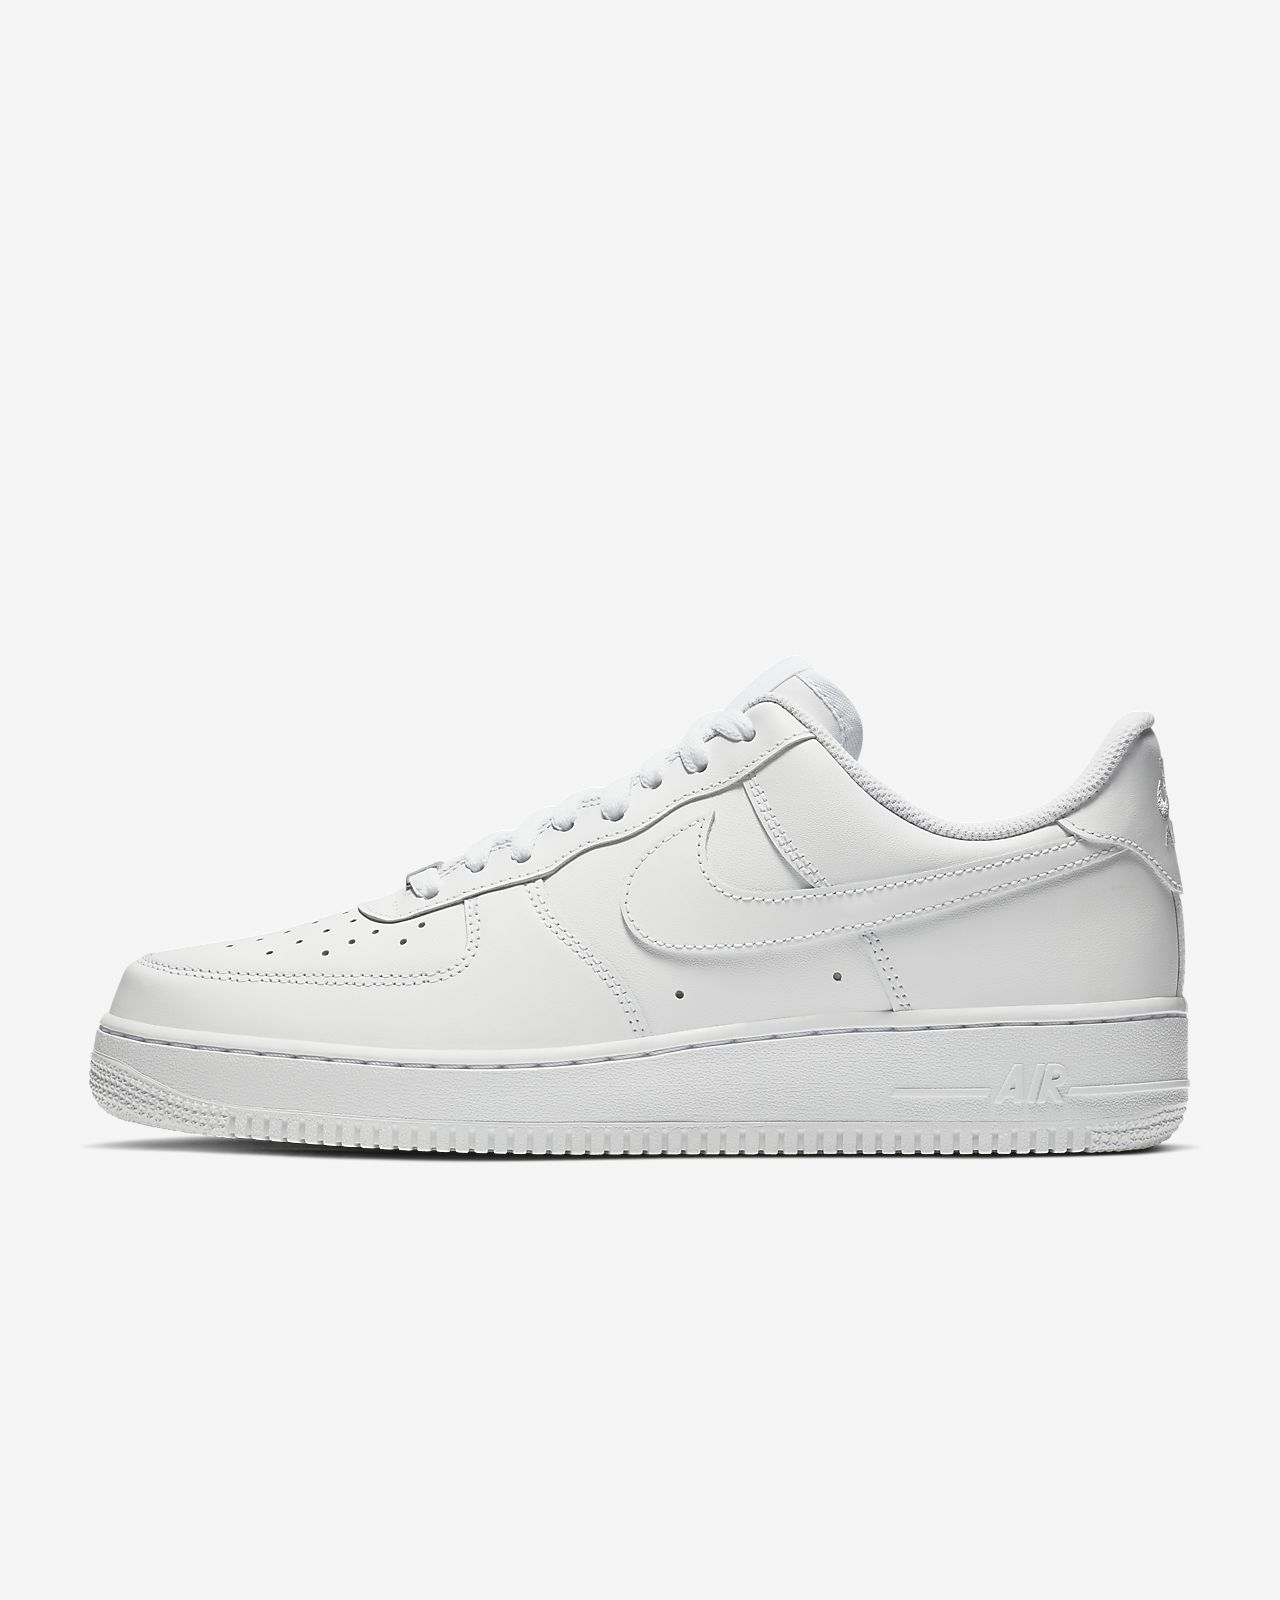 6beefb14c87f93 Nike Air Force 1  07 Shoe. Nike.com